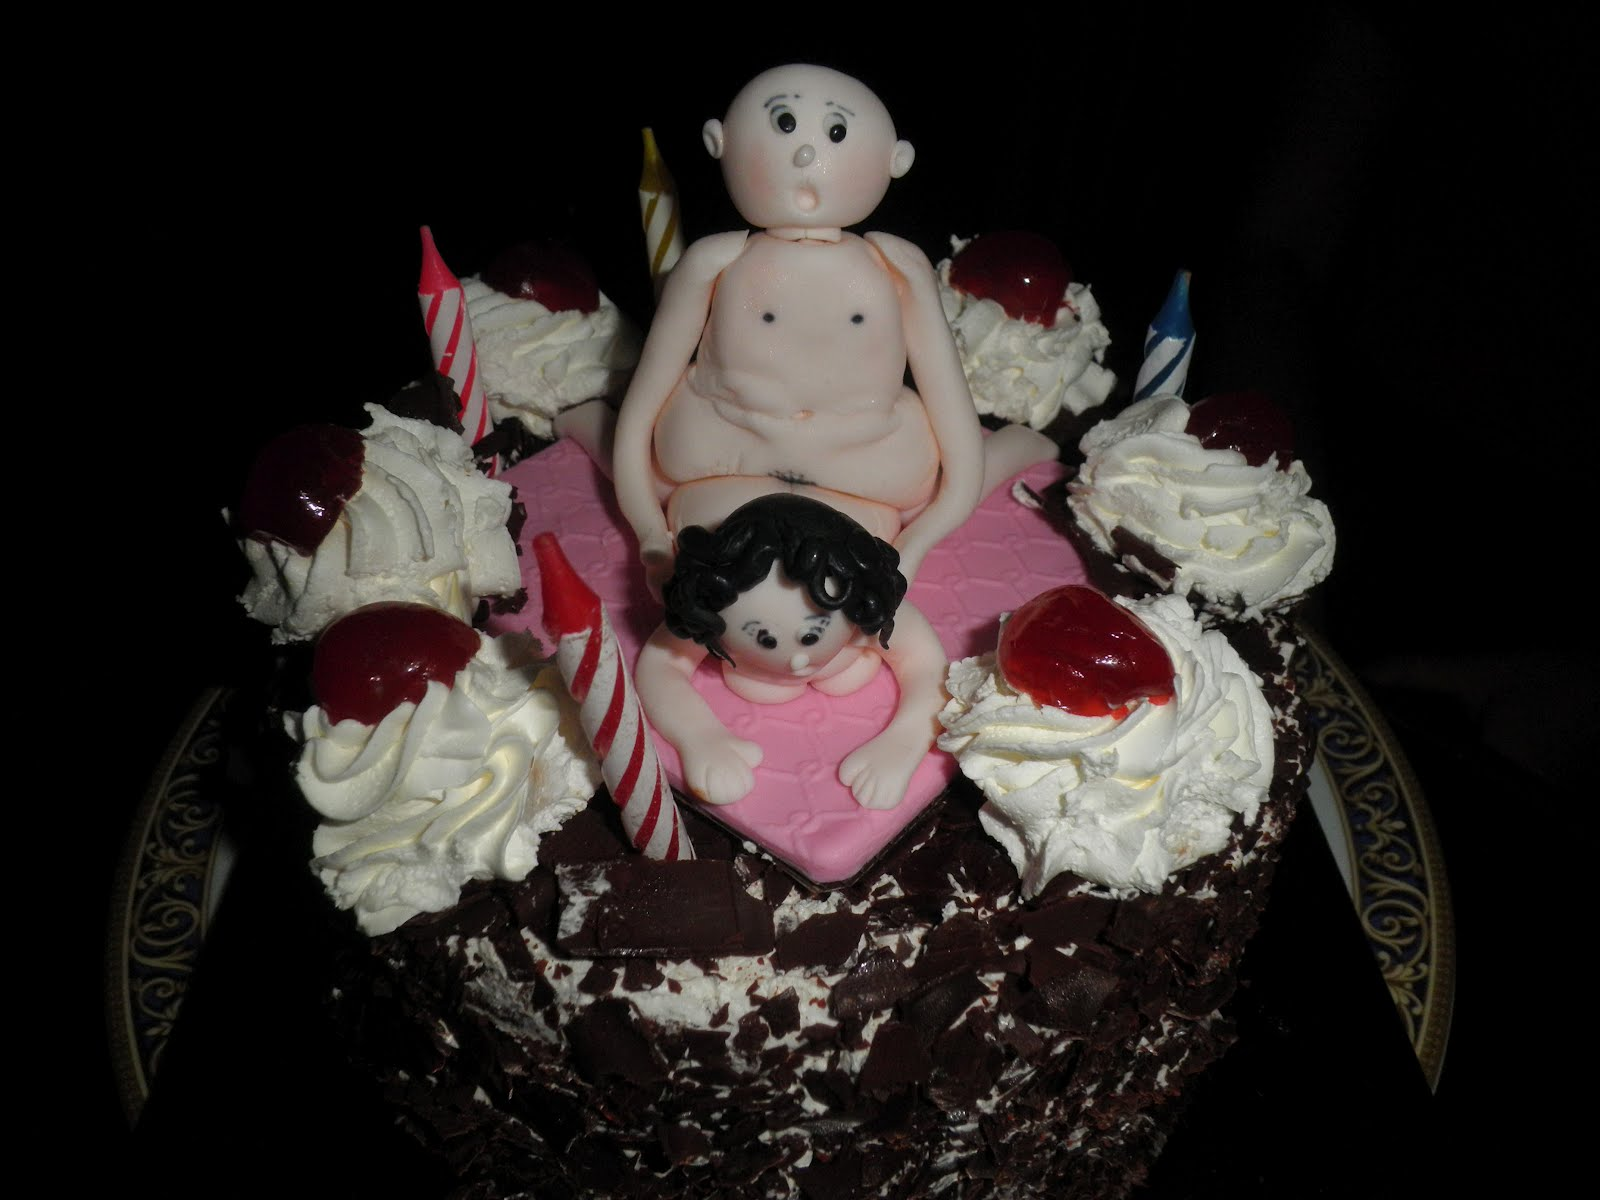 Naughty Bday Cake Images : ceploktelor: NAUGHTY CAKE